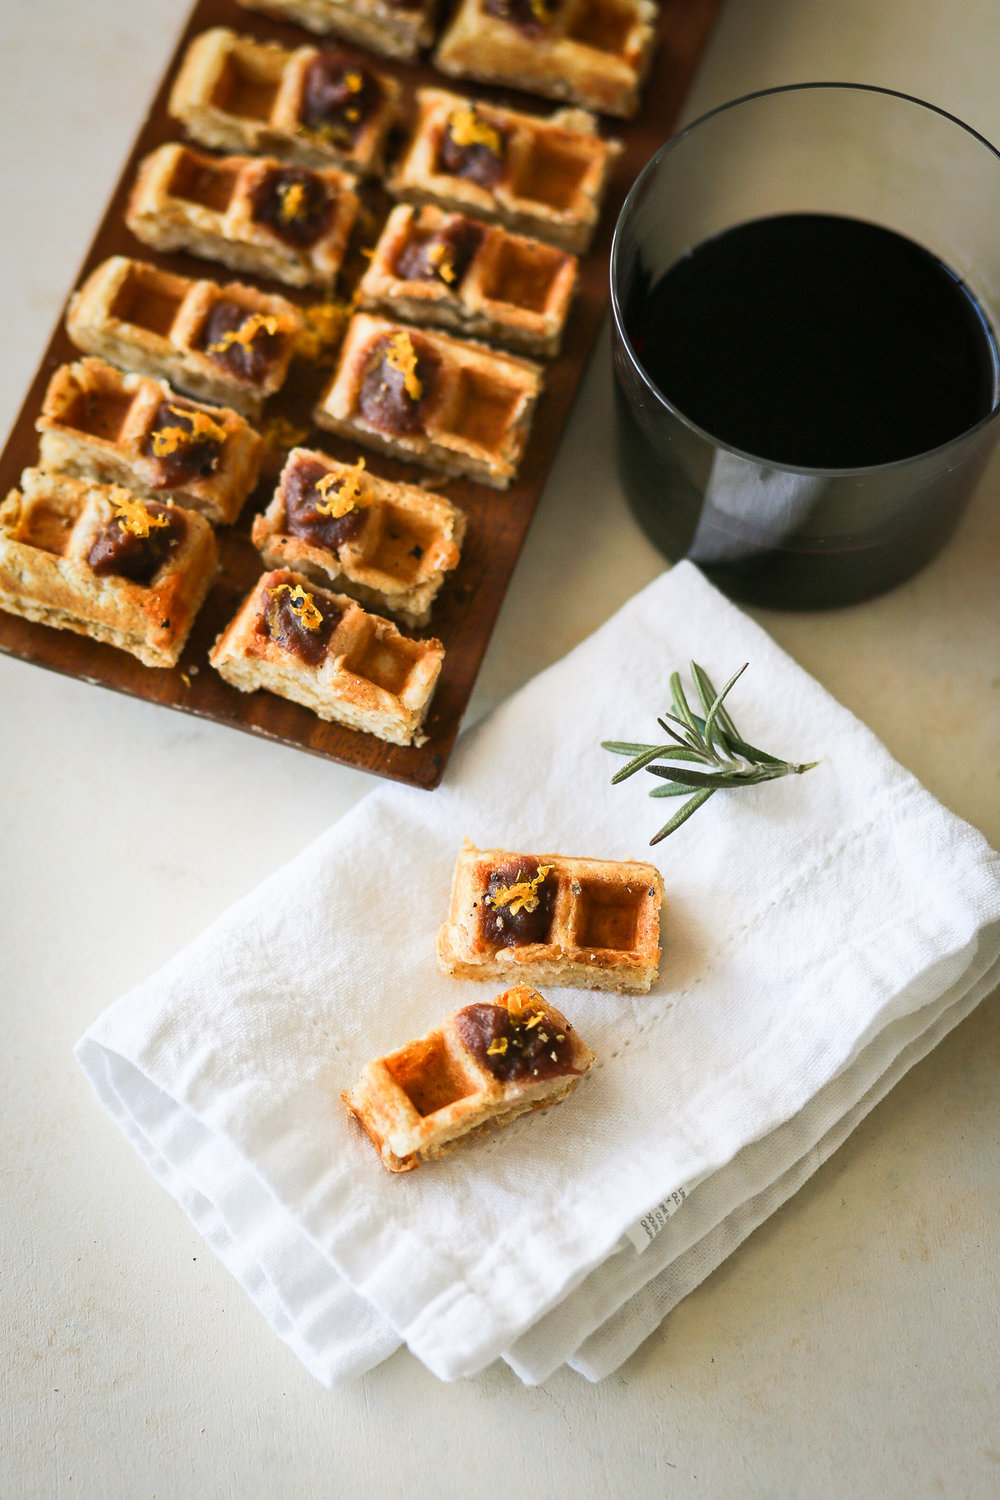 Rosemary Apple Butter Waffle Bites | Set the Table #thanksgiving #thanksgivingappetizer #holidayappetizer #holidayrecipe #hoidaycocktailparty #cocktailpartyappetizer #recipe